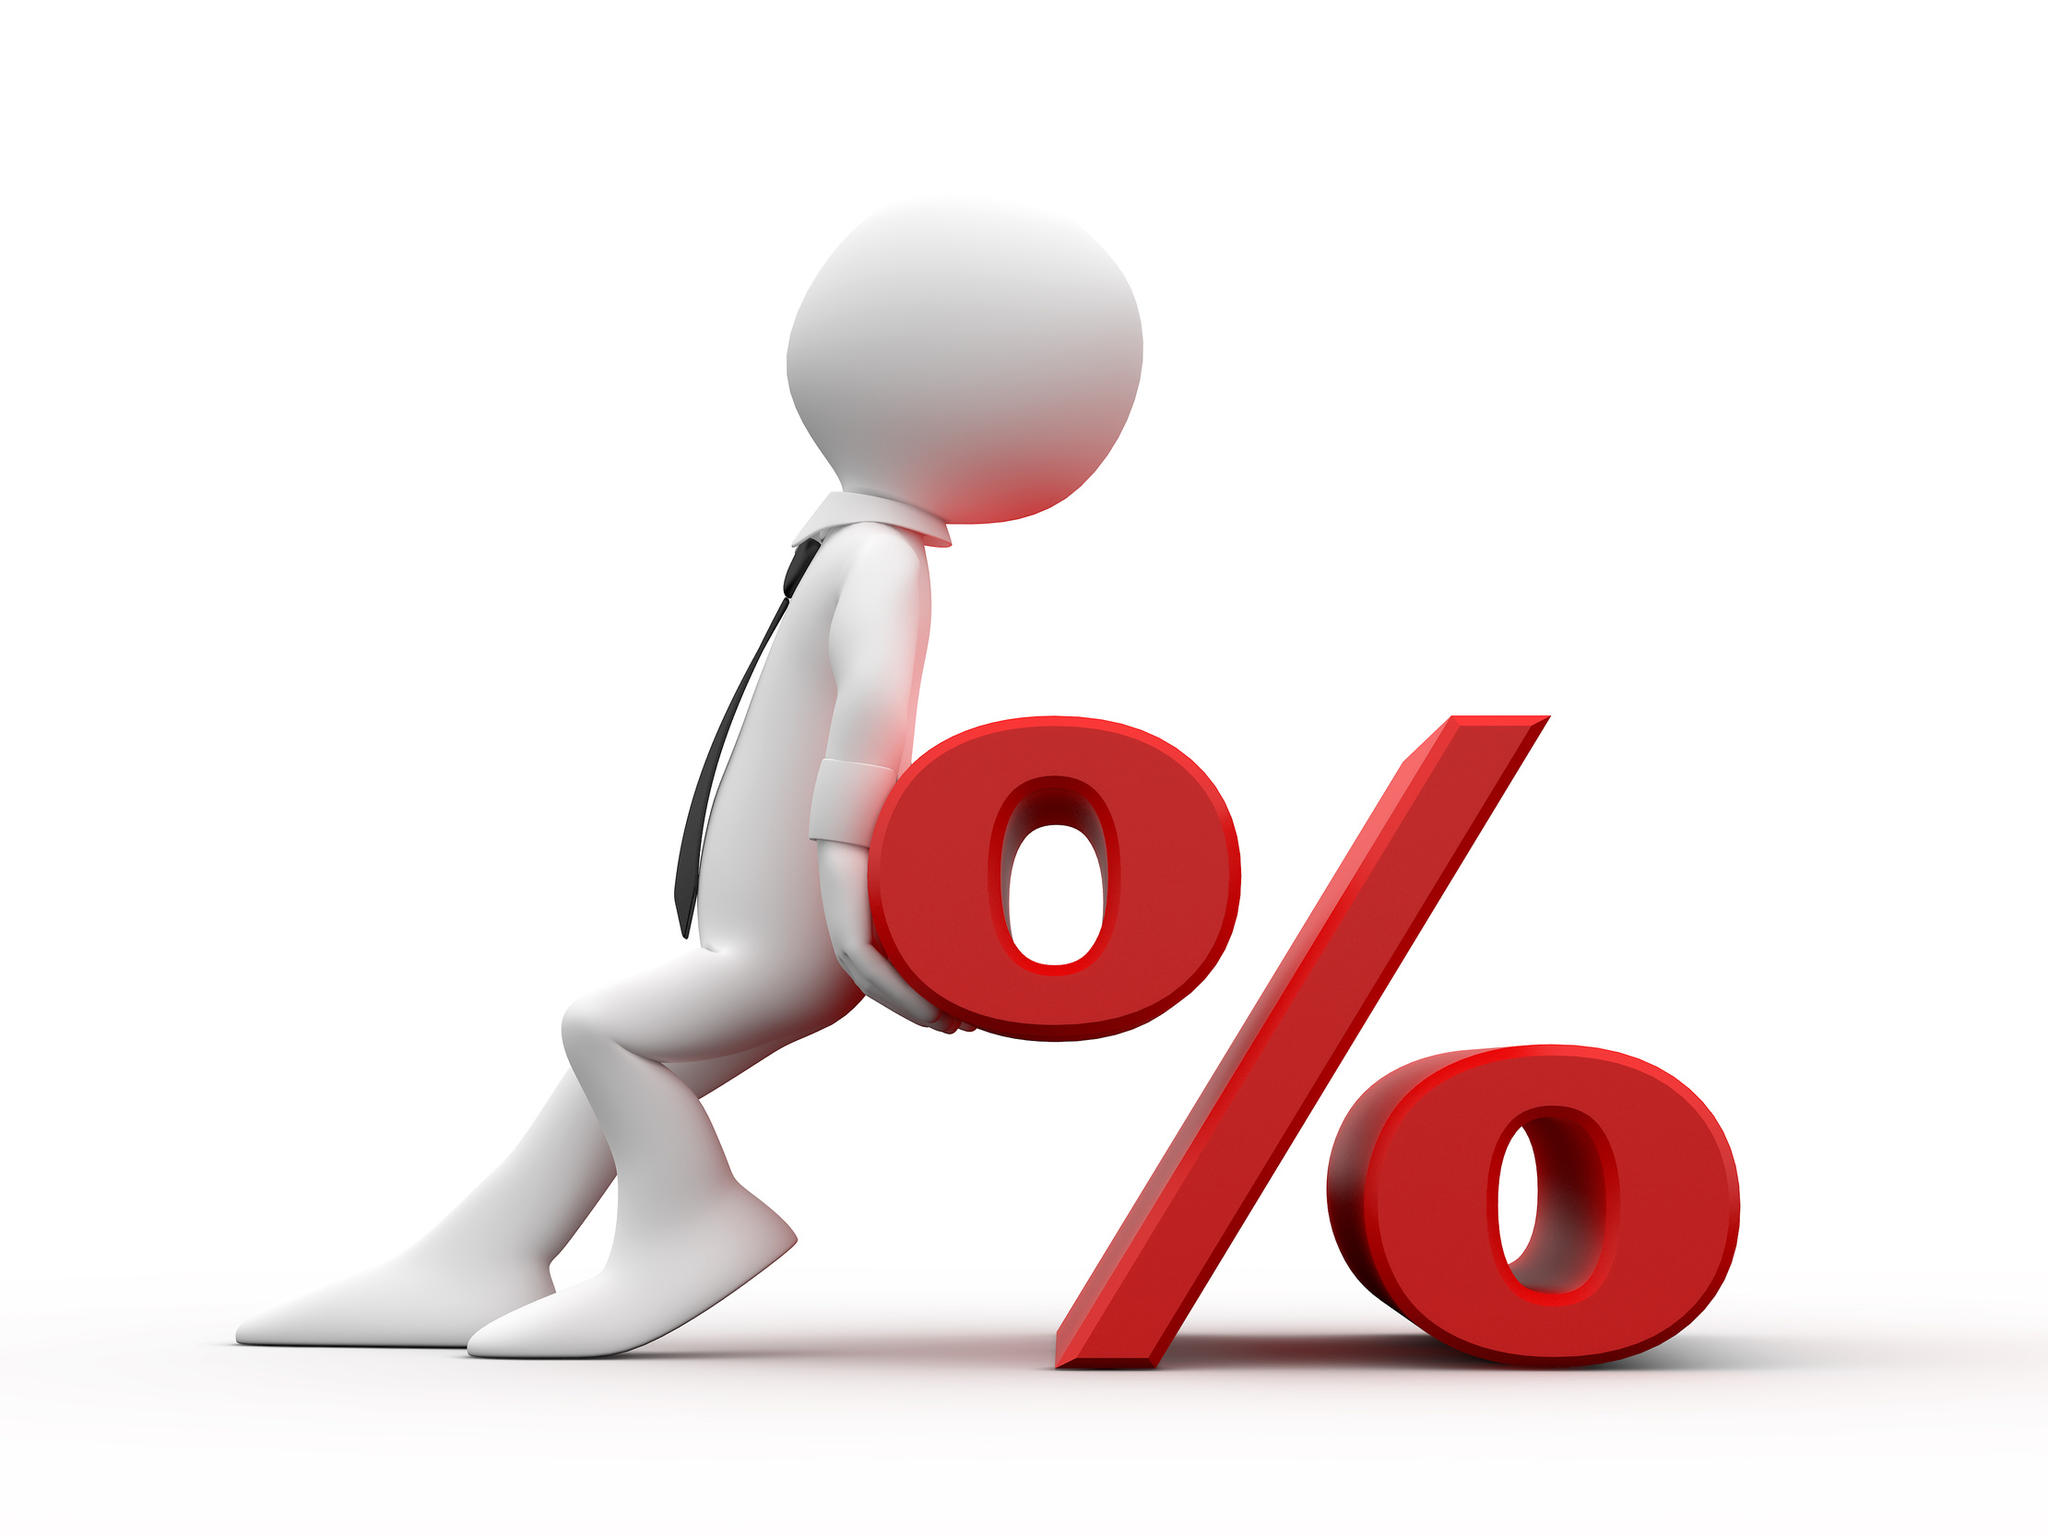 How to Do Percentages - Learn how to